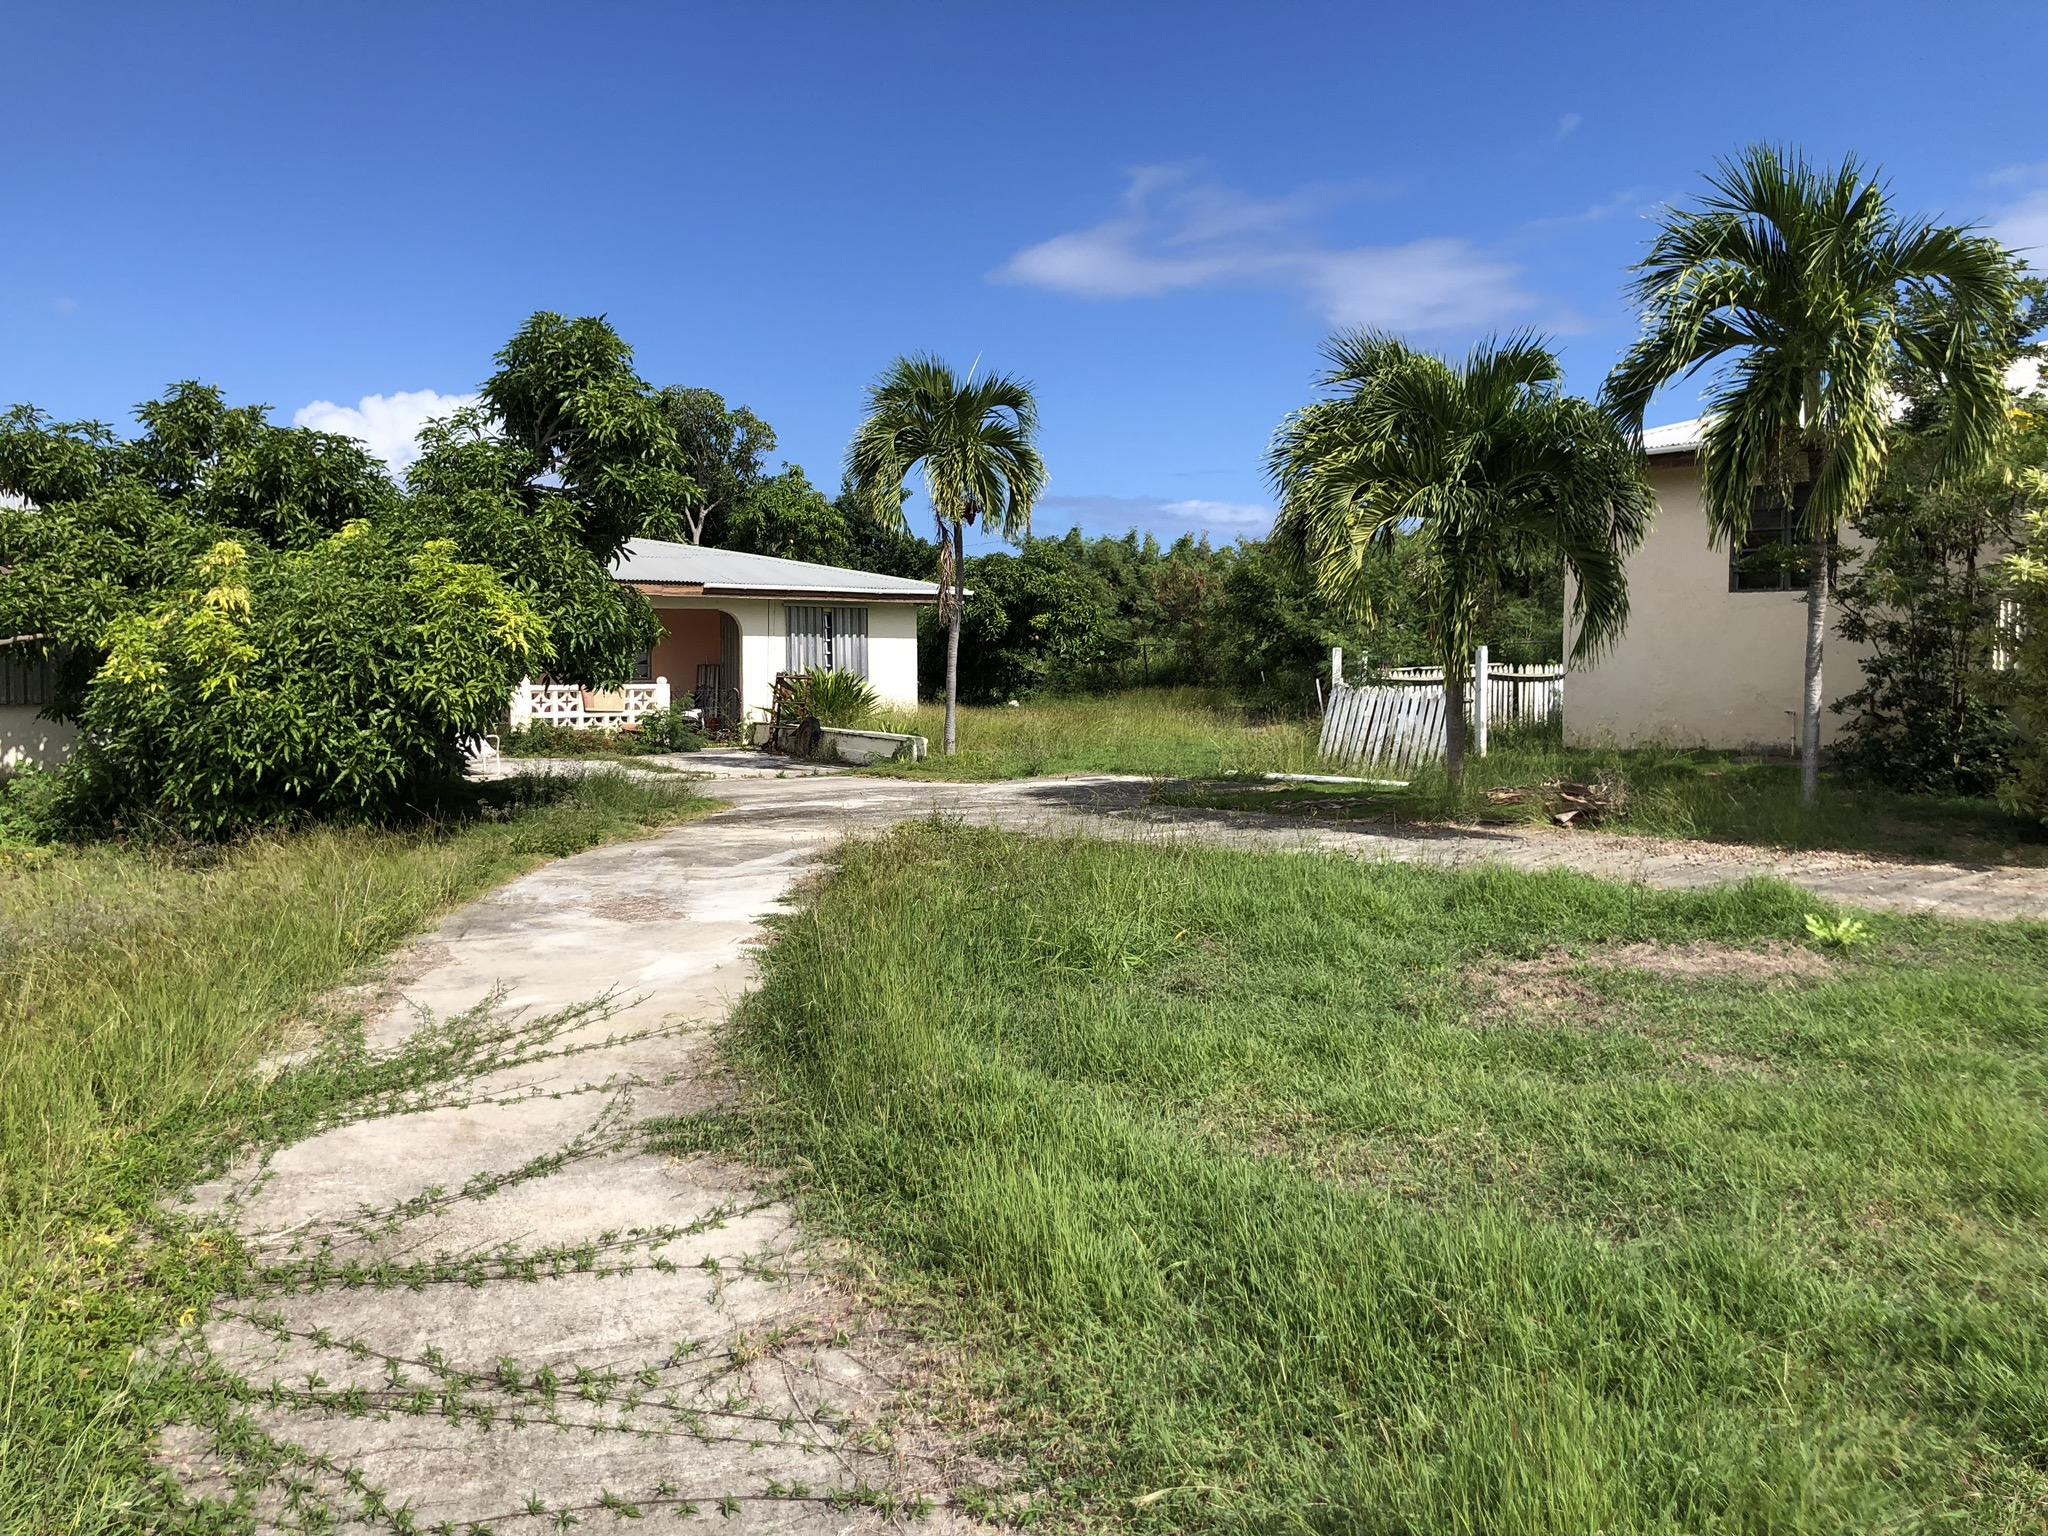 Single Family Home for Sale at 77 All for the Better EA 77 All for the Better EA St Croix, Virgin Islands 00820 United States Virgin Islands